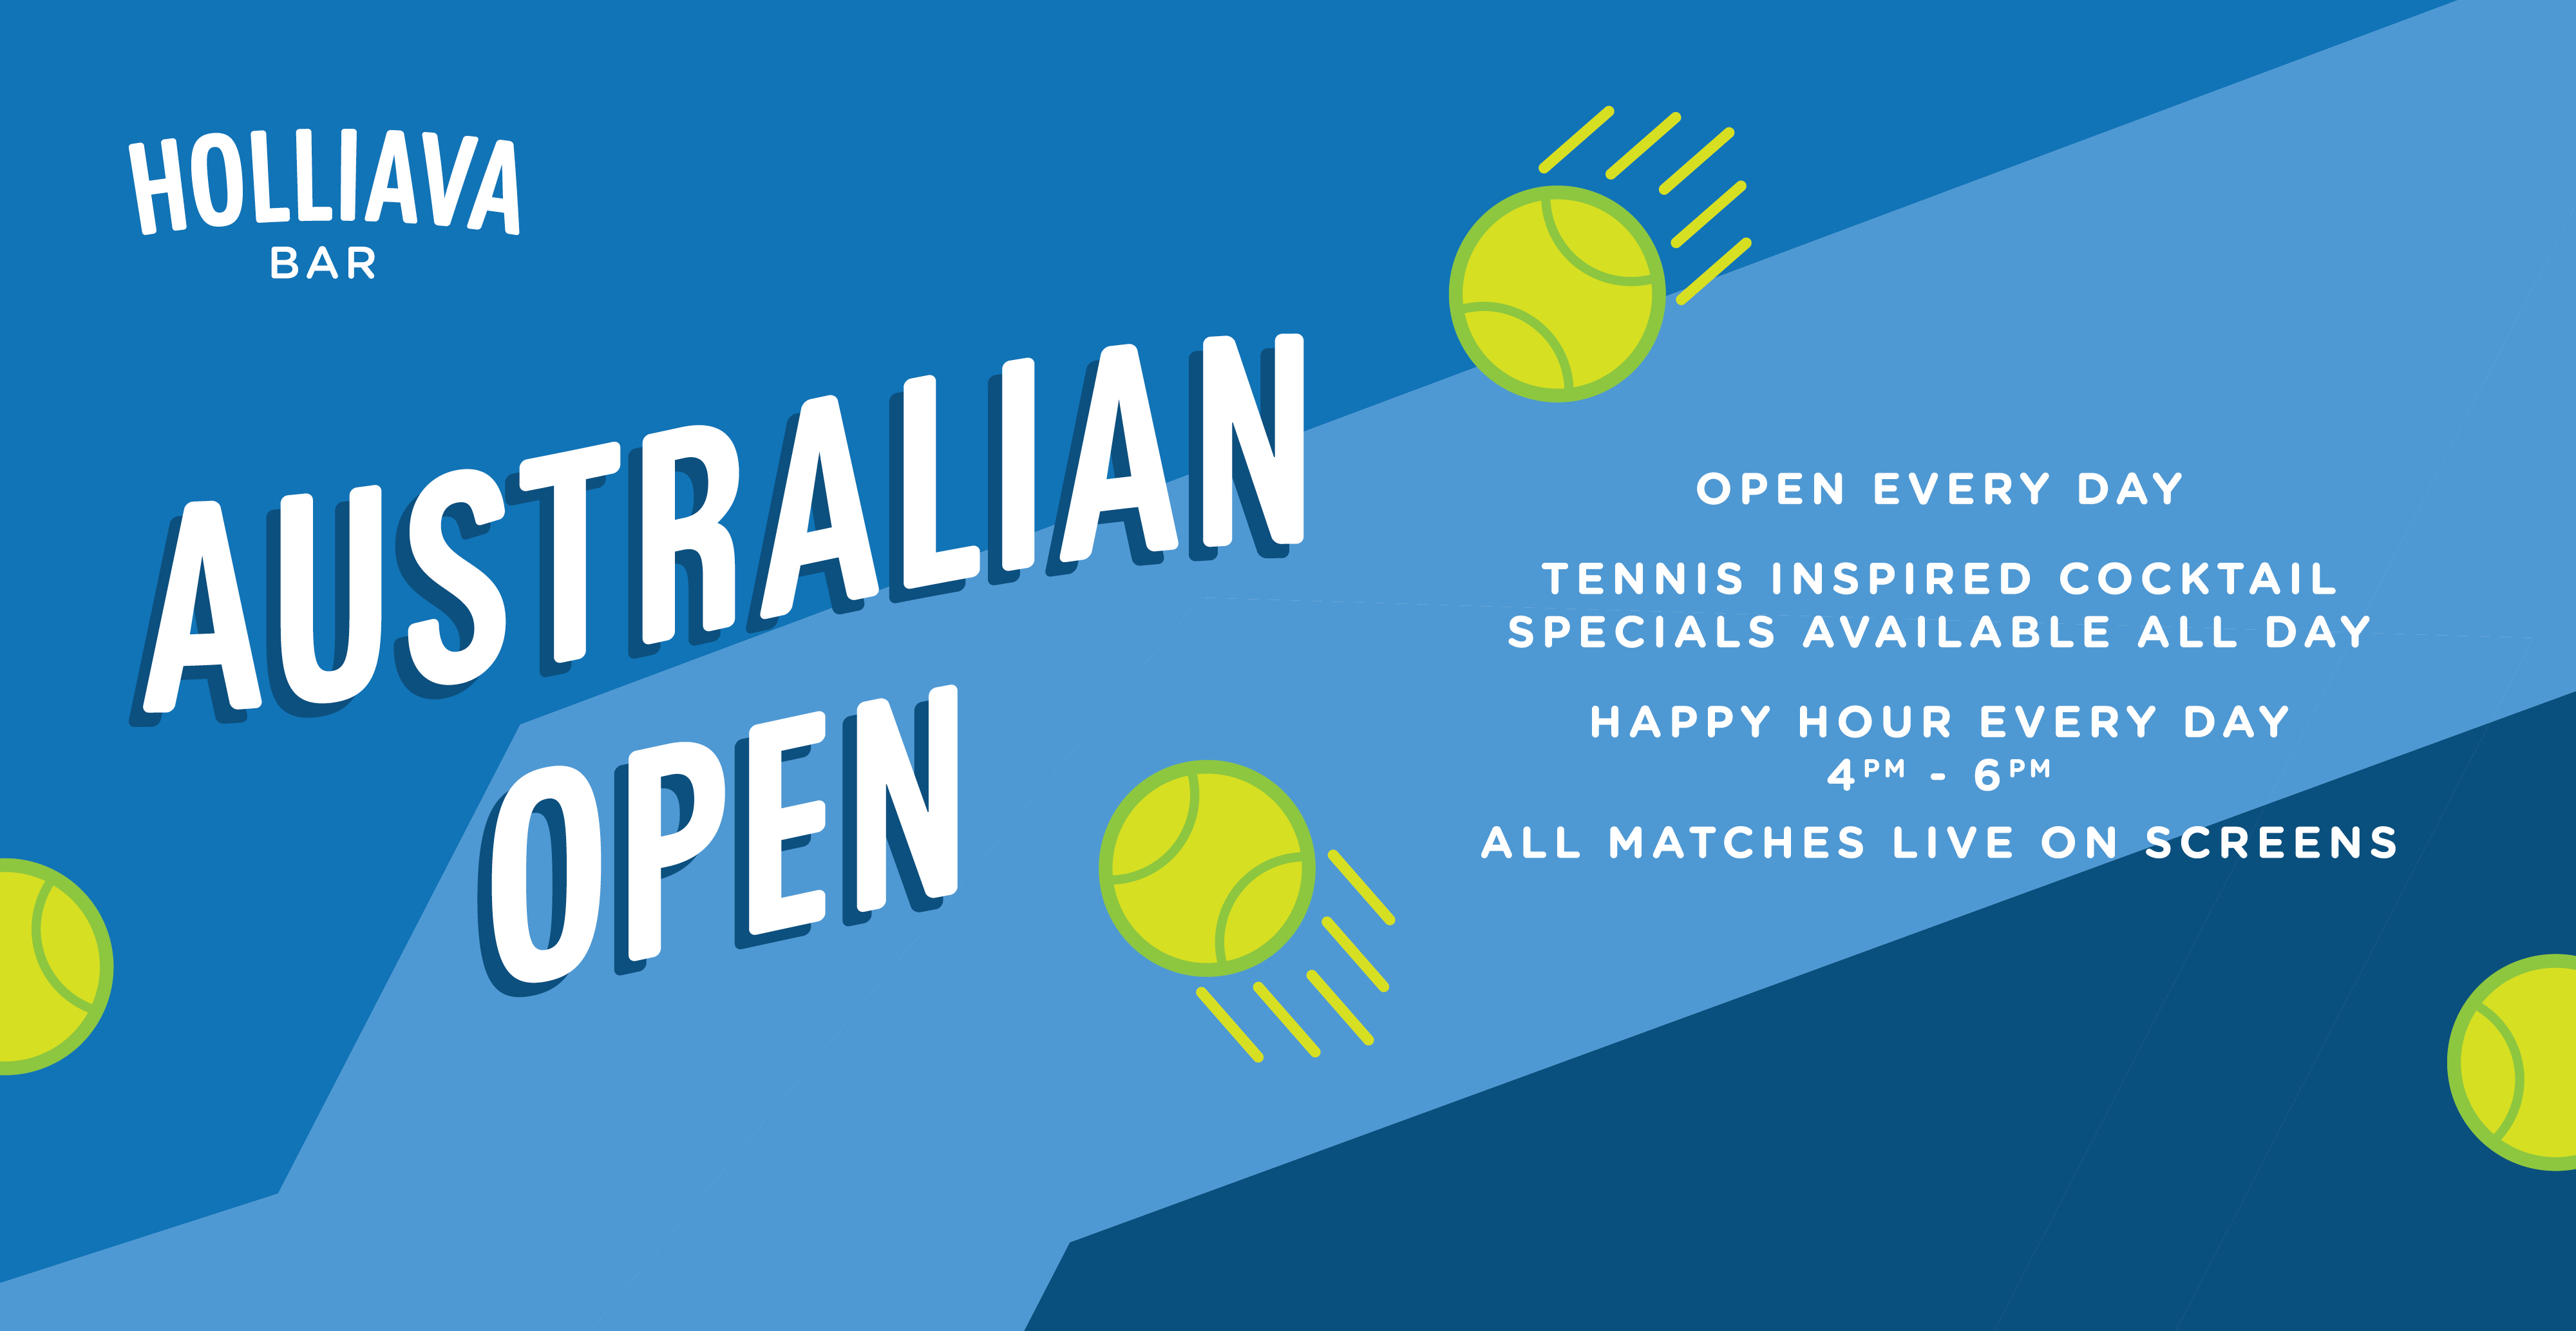 Holliava_AustralianOpen_PlayTile_FAOUT